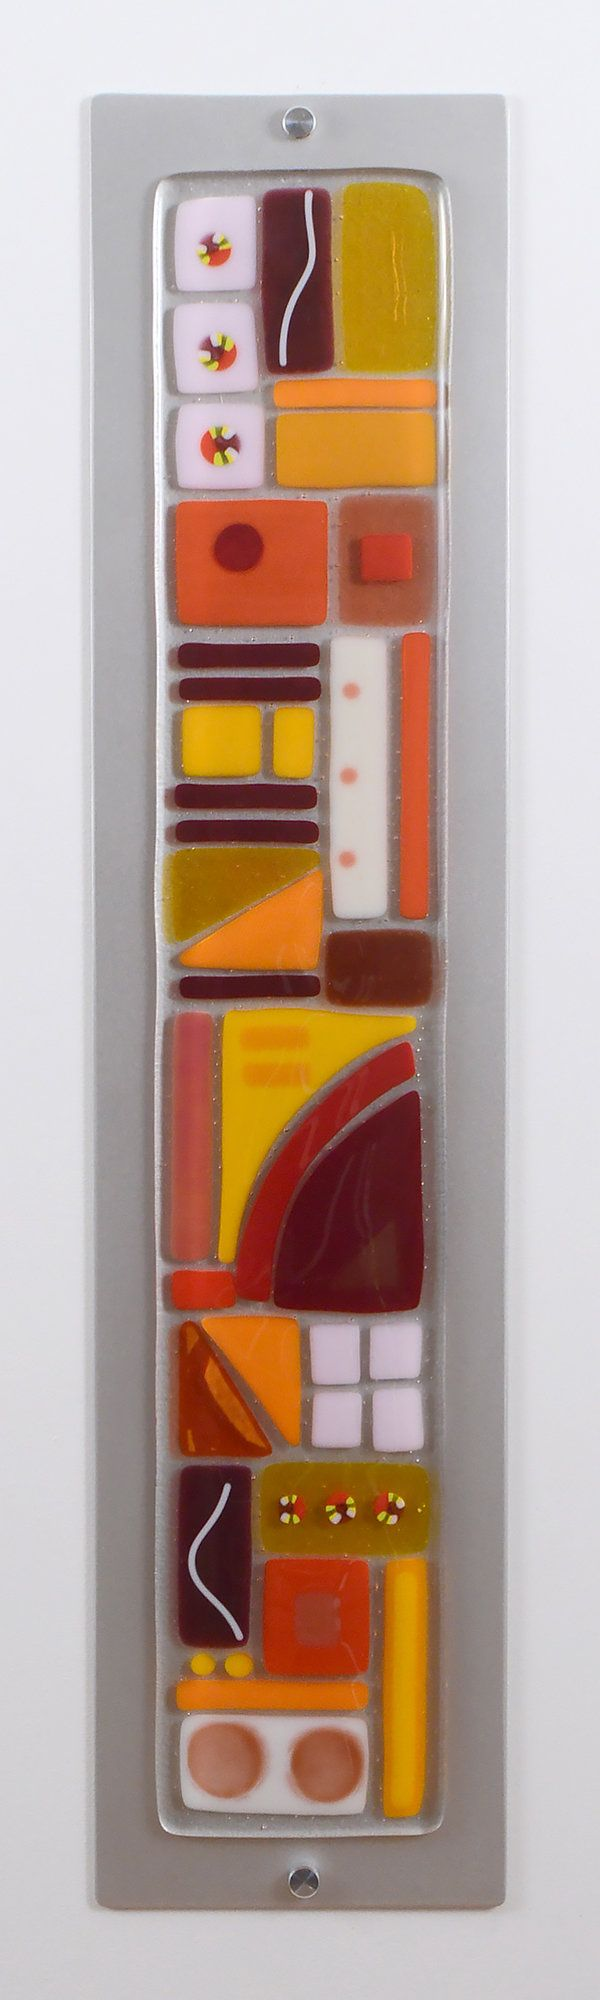 Spice Jar by Mary Johannessen: Art Glass Wall Sculpture available at www.artfulhome.com